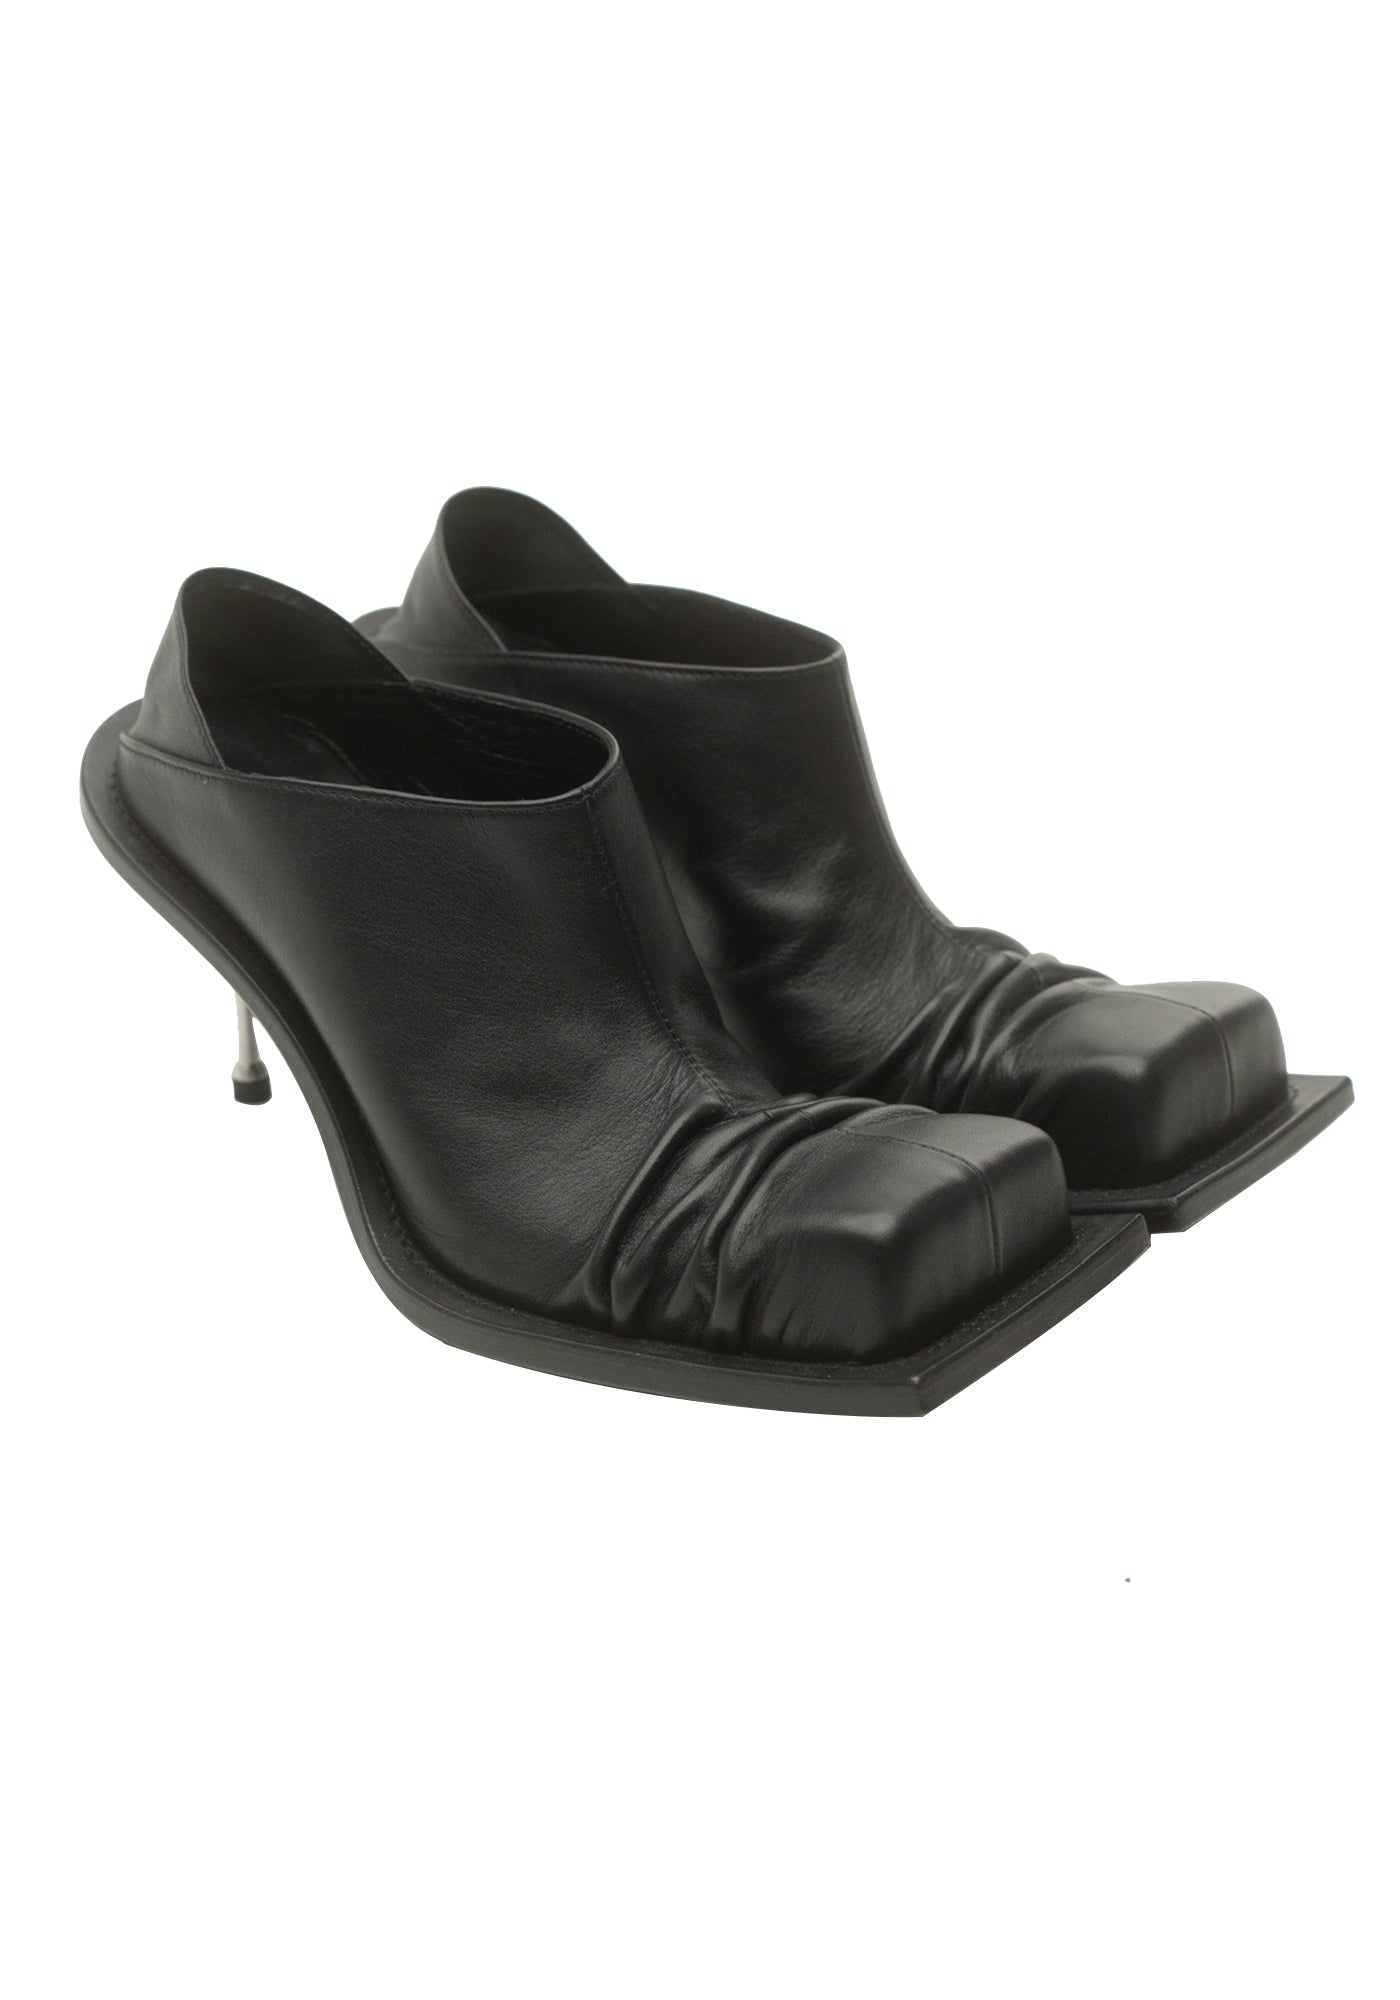 Convertible Mules (Black)